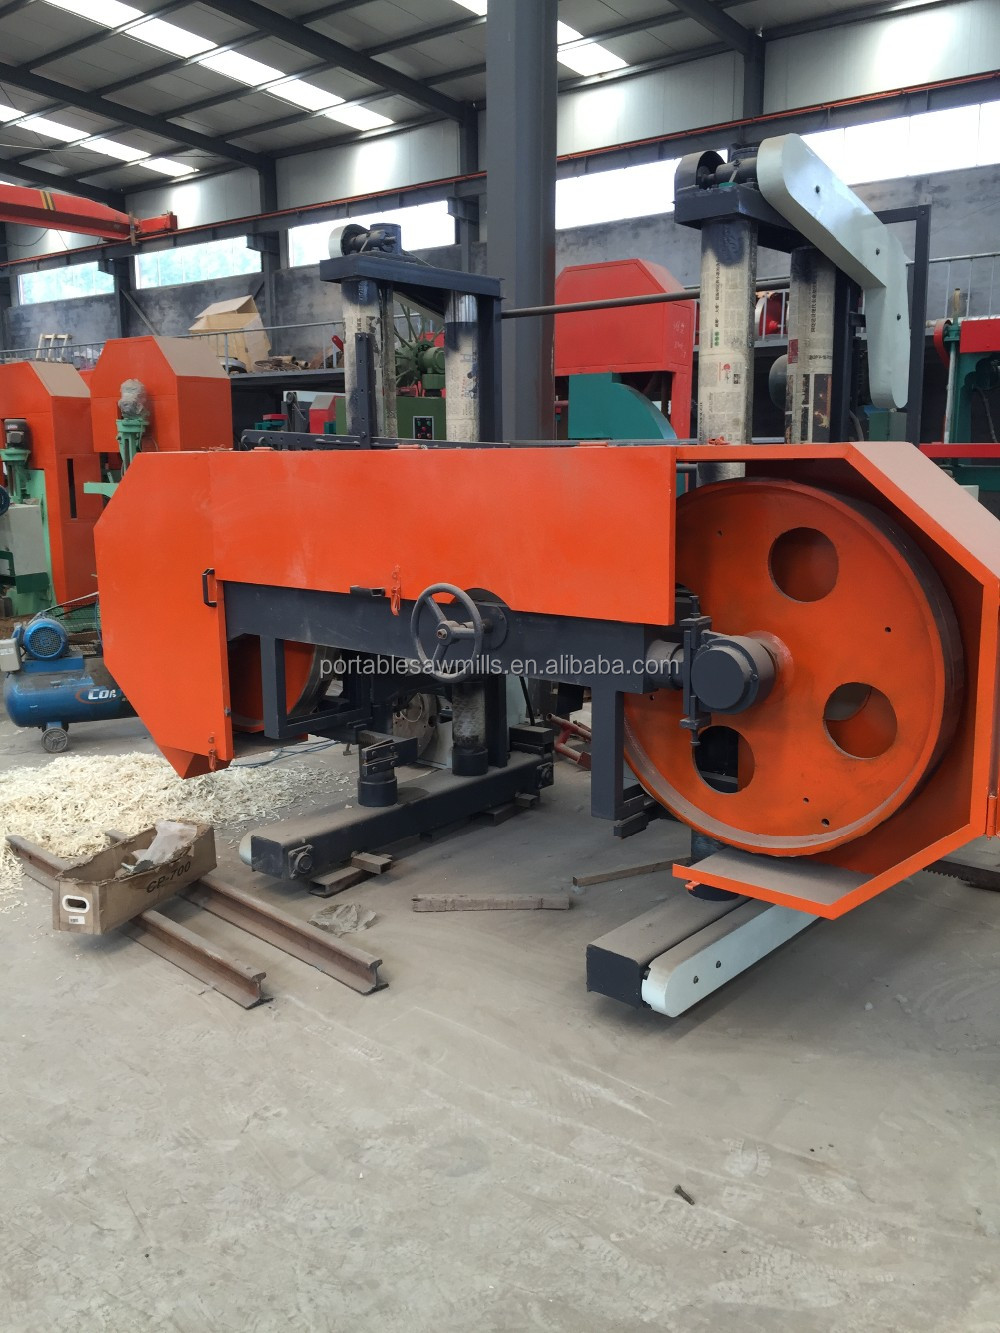 Horizontal type electrical Heavy duty large band saw for big tree cutting machine